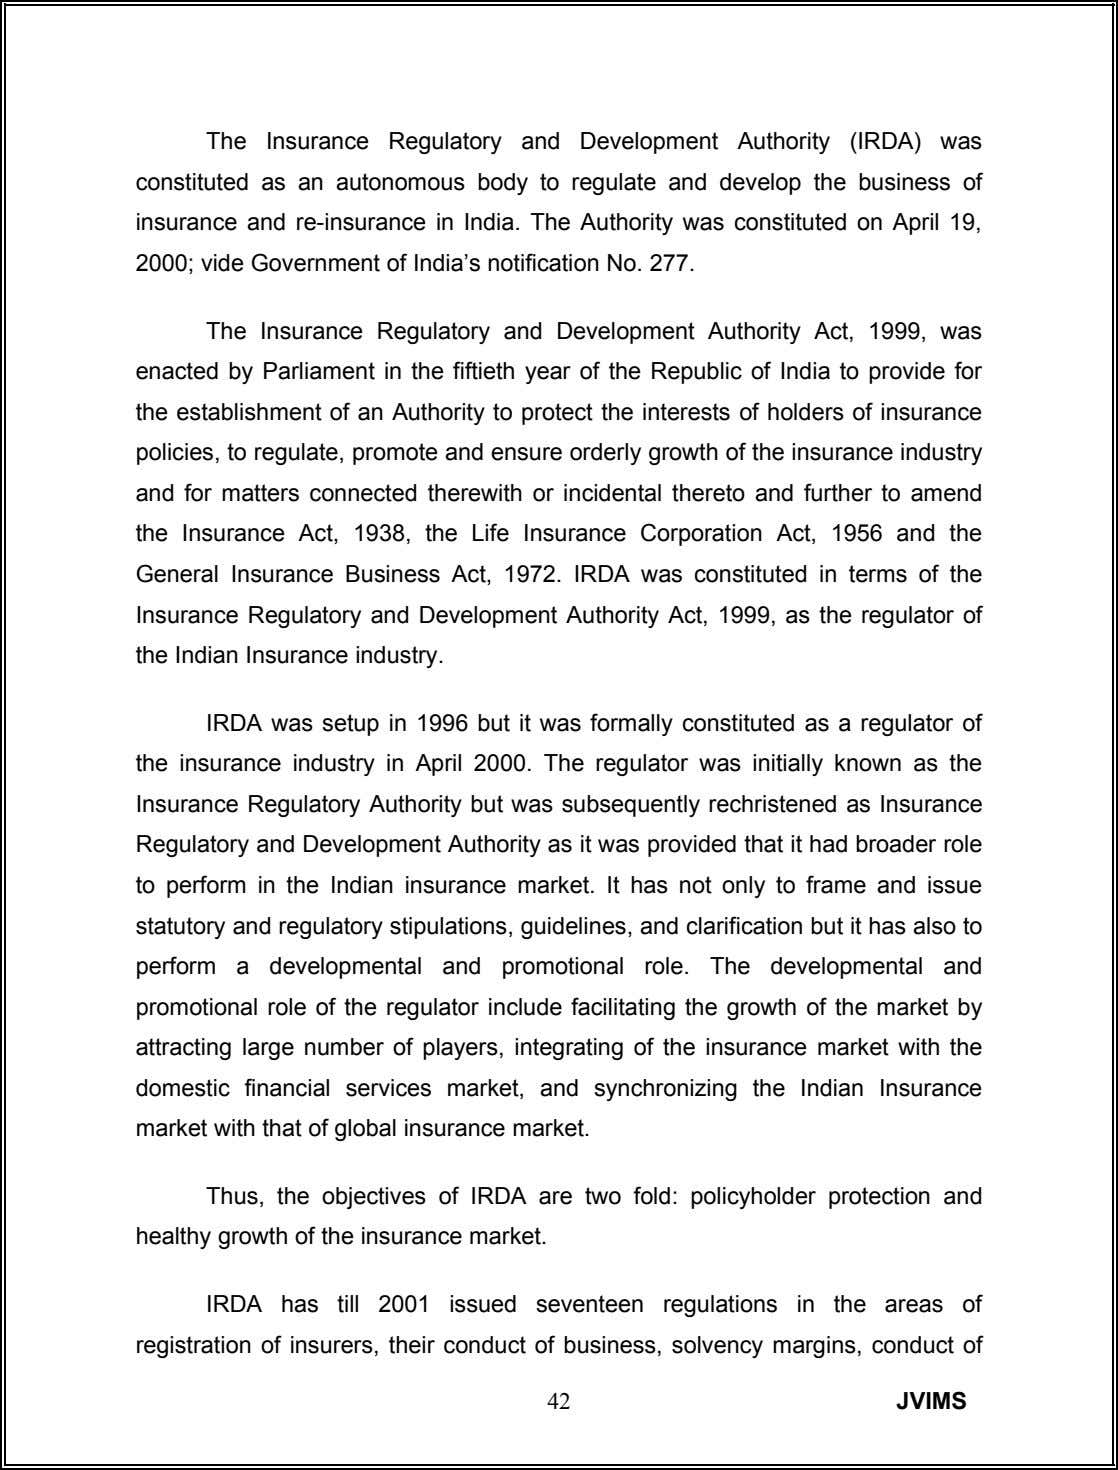 The Insurance Regulatory and Development Authority (IRDA) was constituted as an autonomous body to regulate and